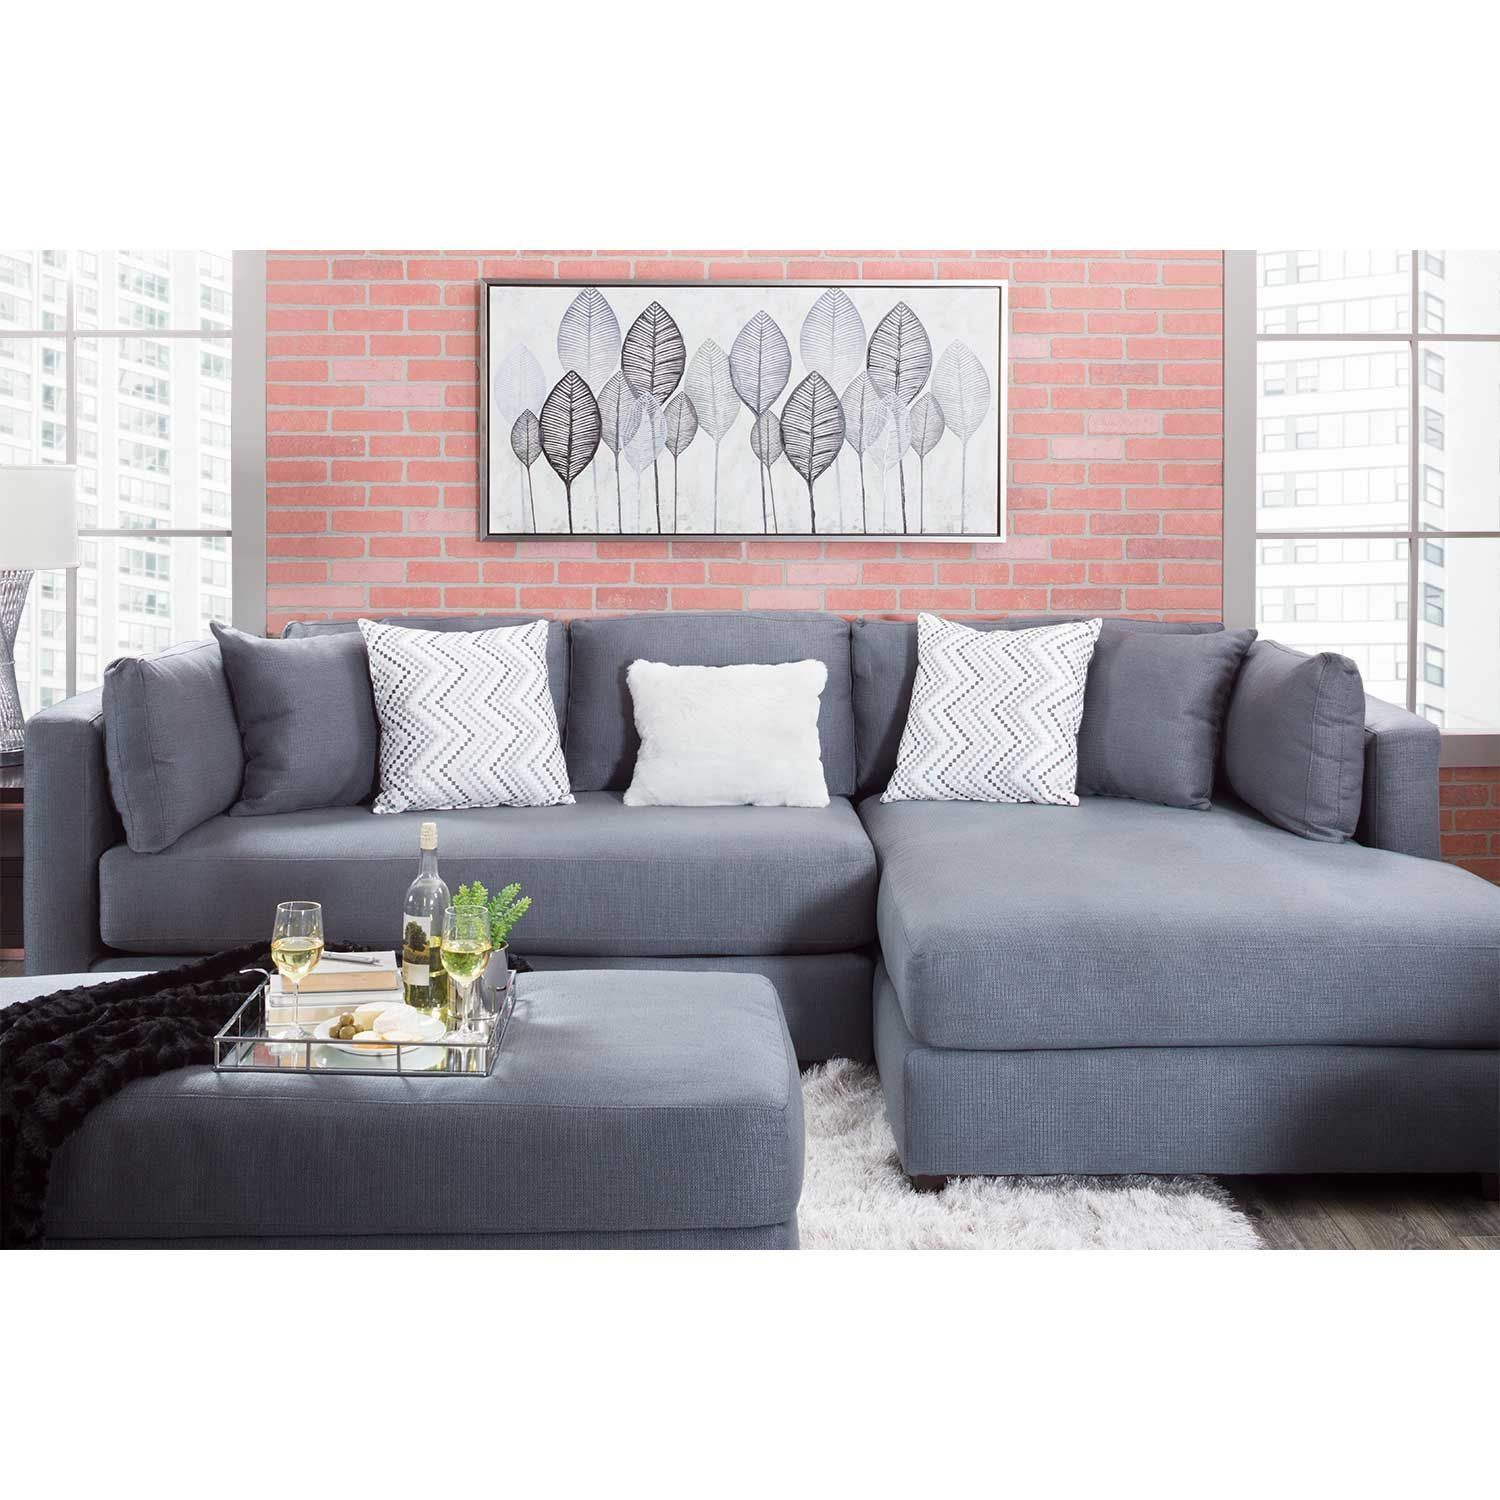 Outstanding Parker 2 Piece With Laf Chaise Sectional 5540 5517 Bralicious Painted Fabric Chair Ideas Braliciousco